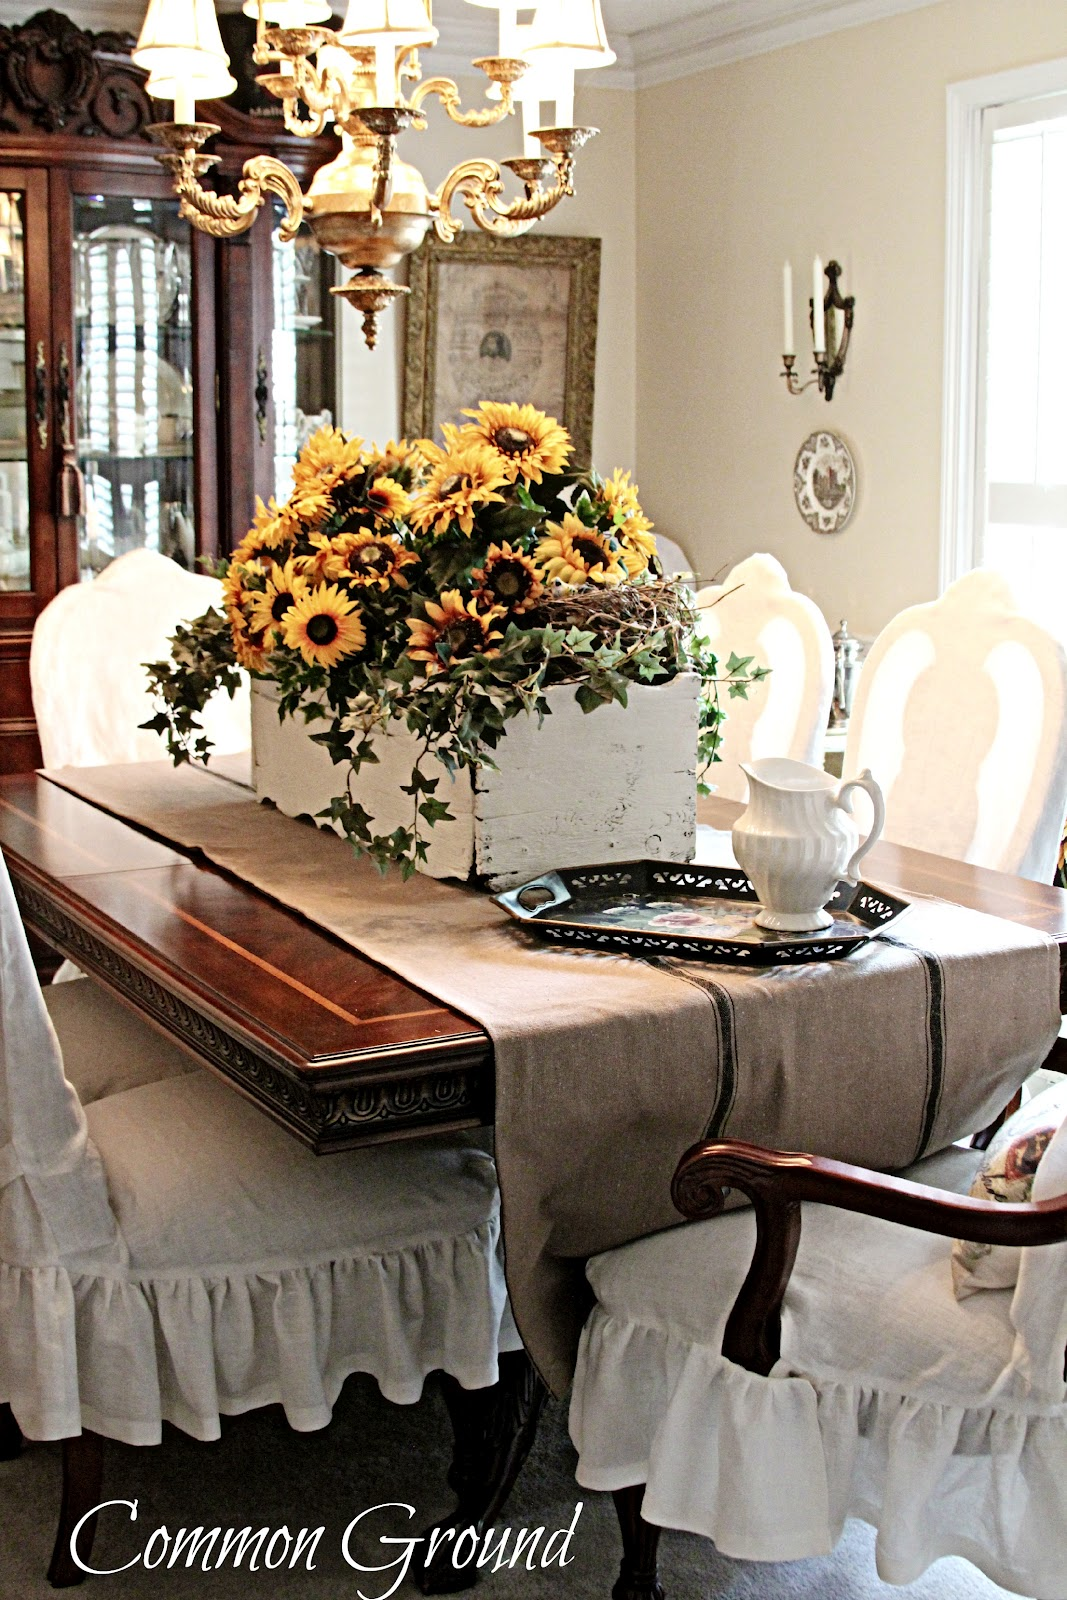 Common ground sunflowers for Formal dining table centerpiece ideas